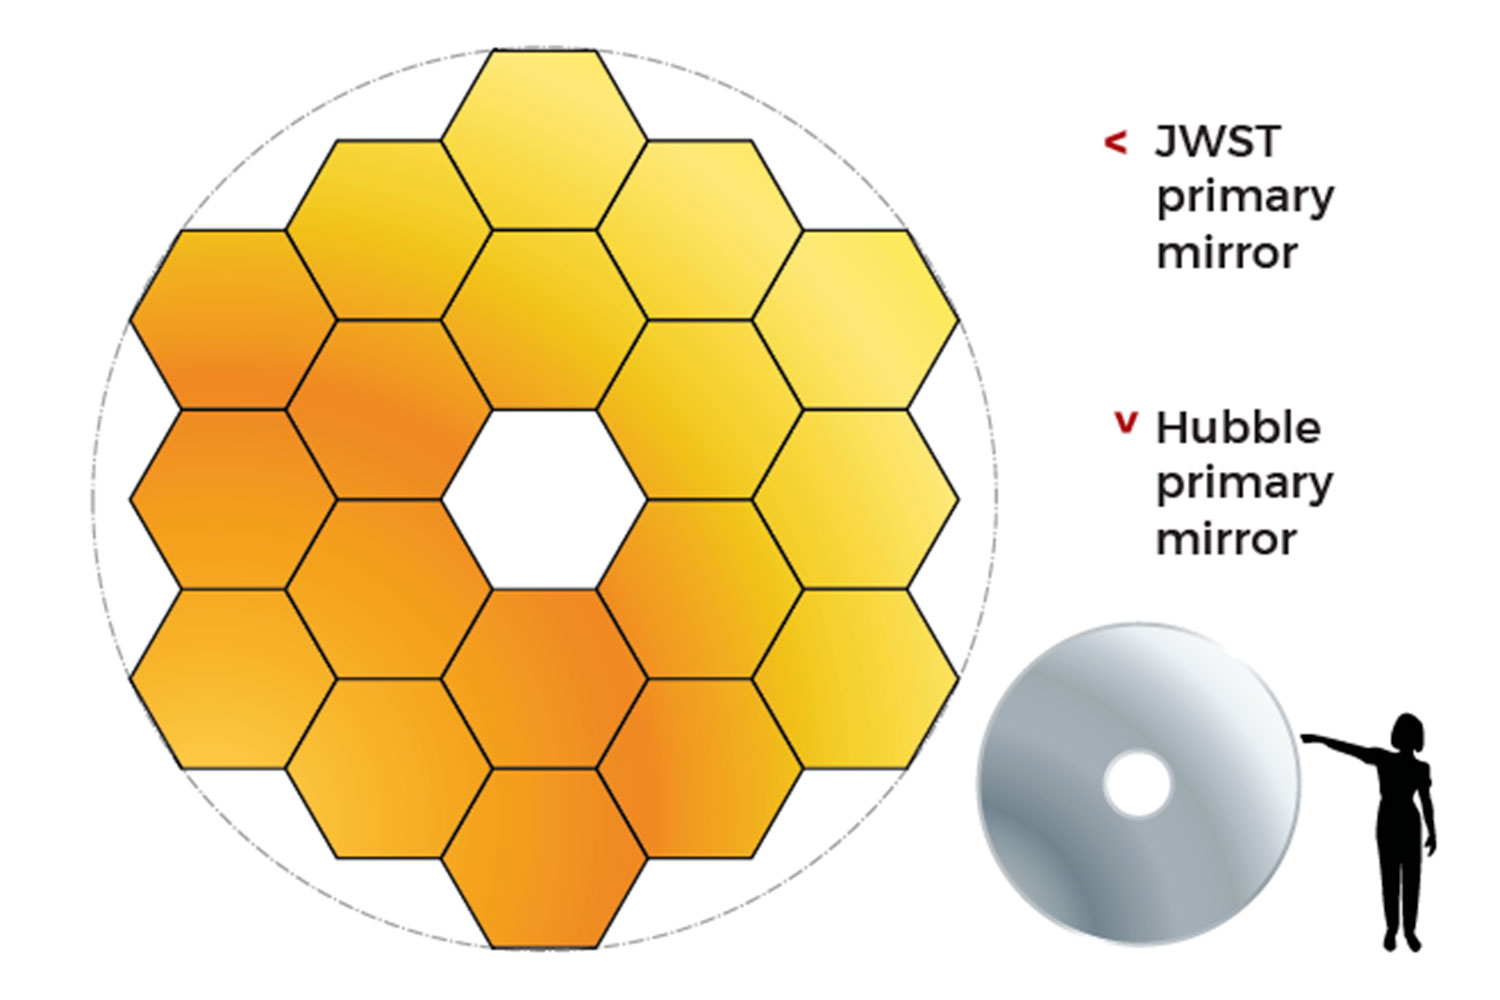 The JWST compared to the Hubble